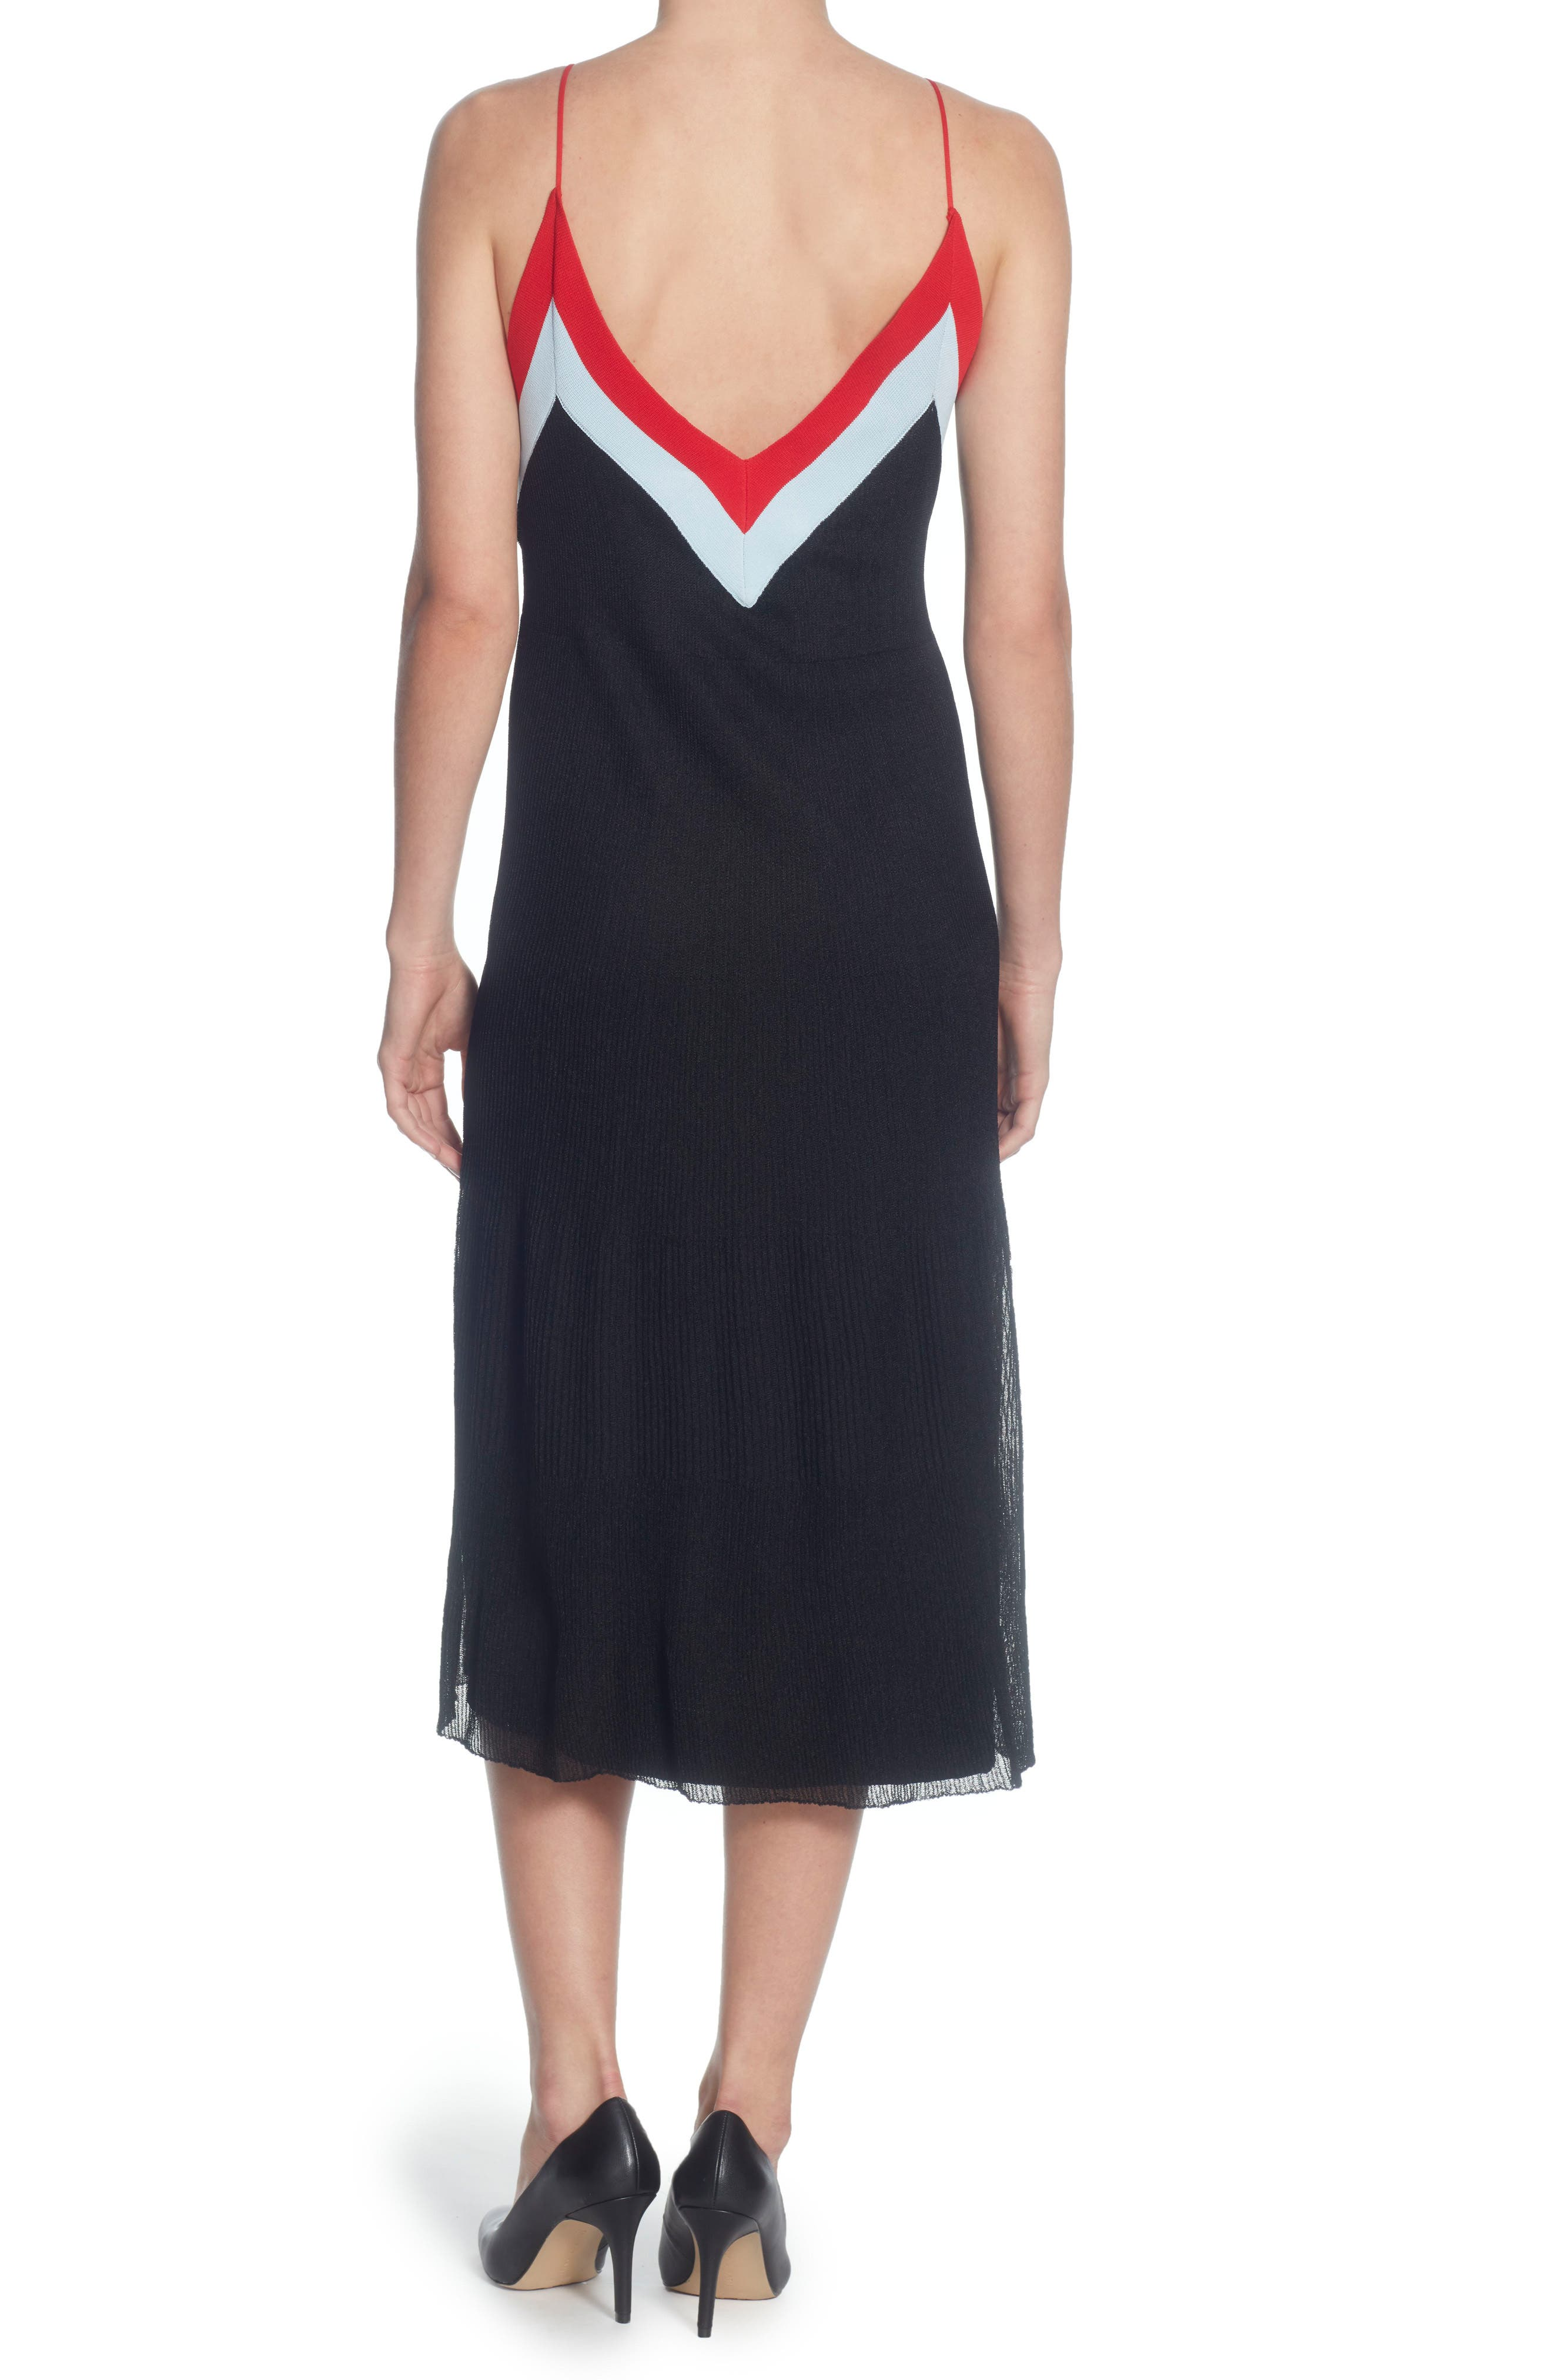 Olympe Fit and Flare Dress,                             Alternate thumbnail 2, color,                             Black/ Powder Blue/ Red